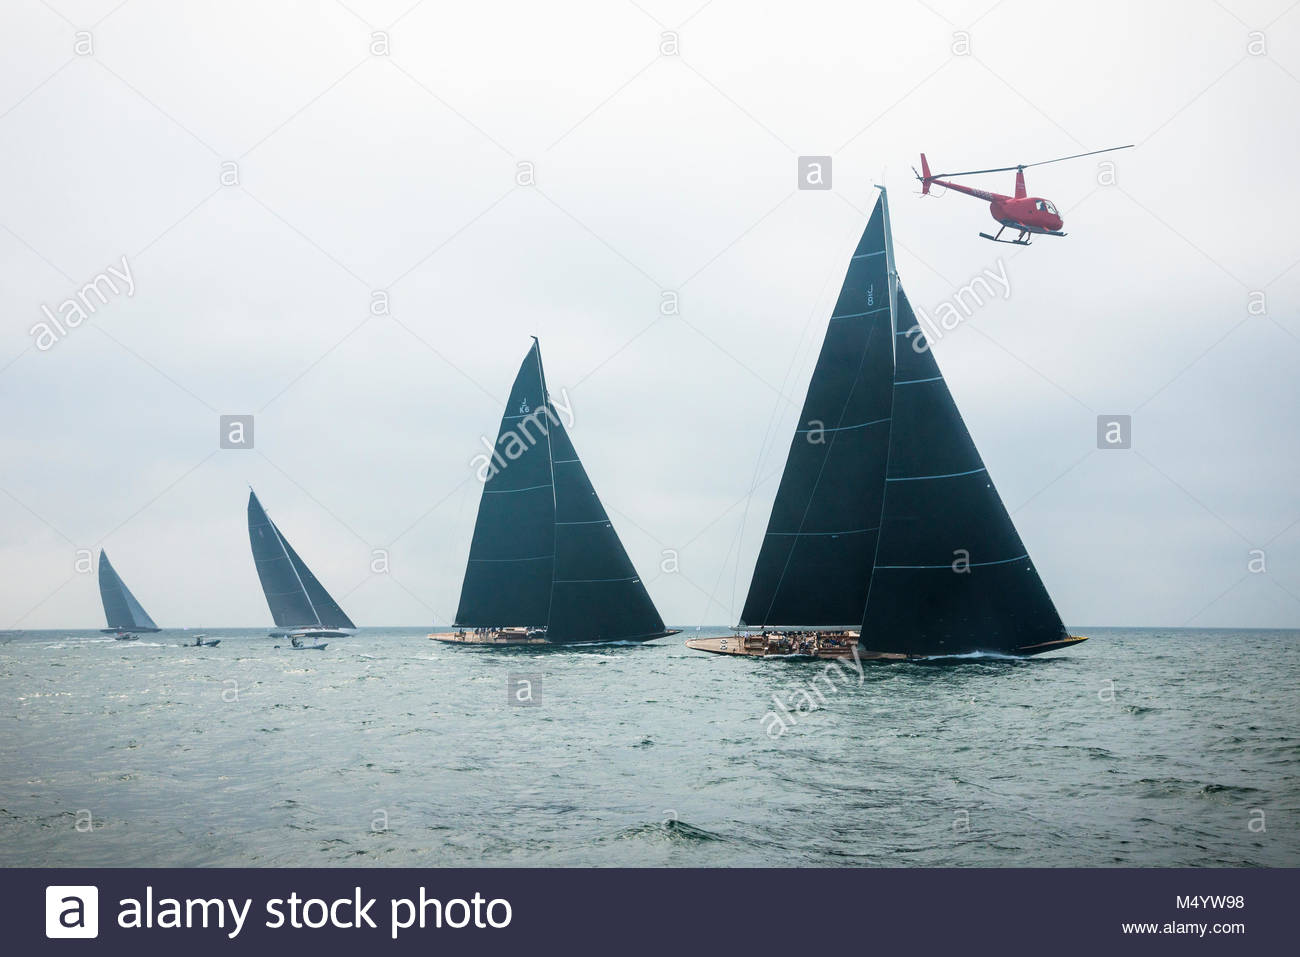 Helicopter covering the first race in the J Class World Championship hosted in Newport, August 2017.  JK-6 Hanuman, Stock Photo